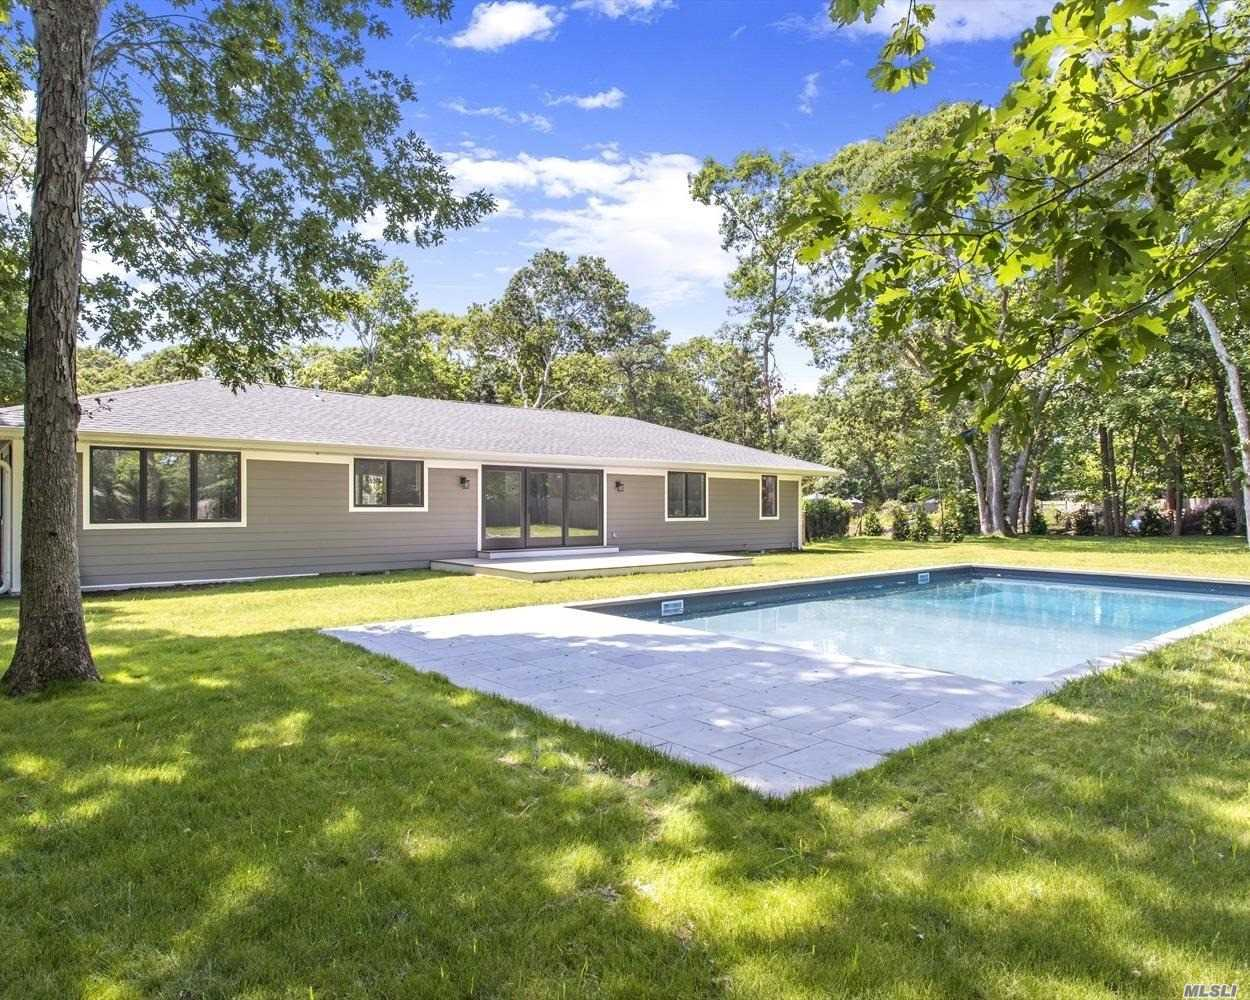 Photo of home for sale at 9 Fairline Dr, East Quogue NY